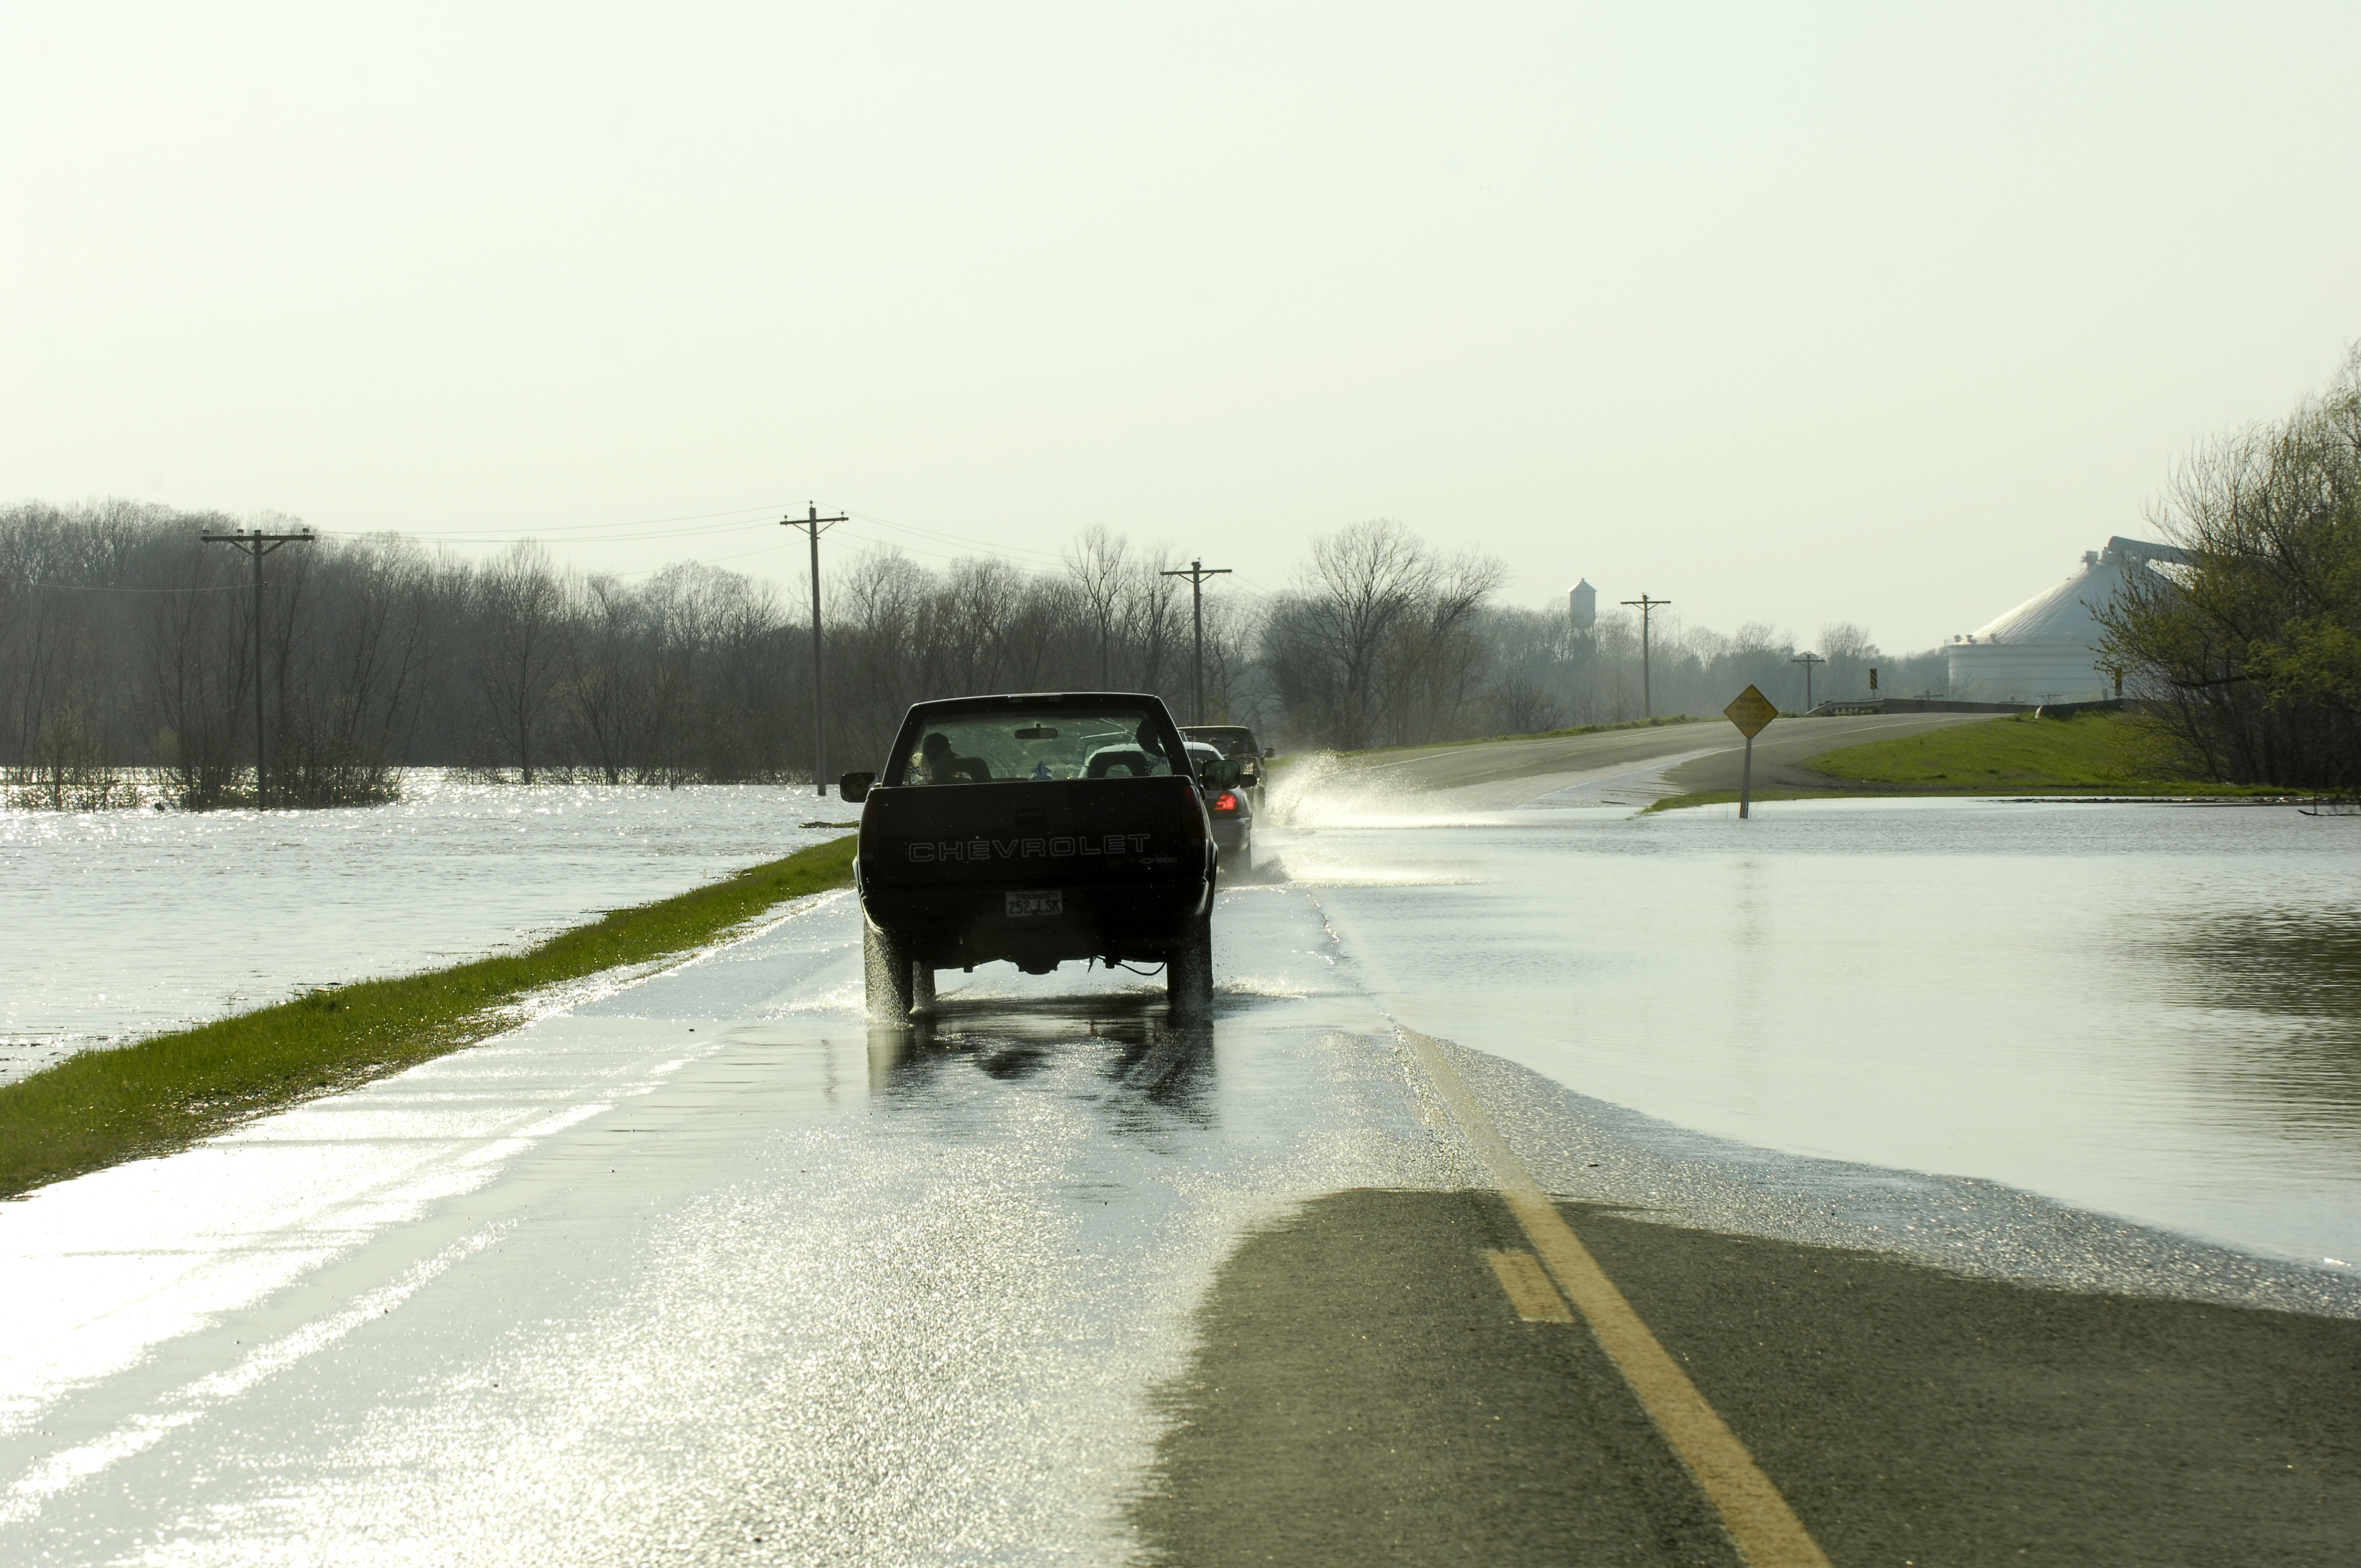 File:FEMA - 34620 - Flooded highway with traffic in Arkansas